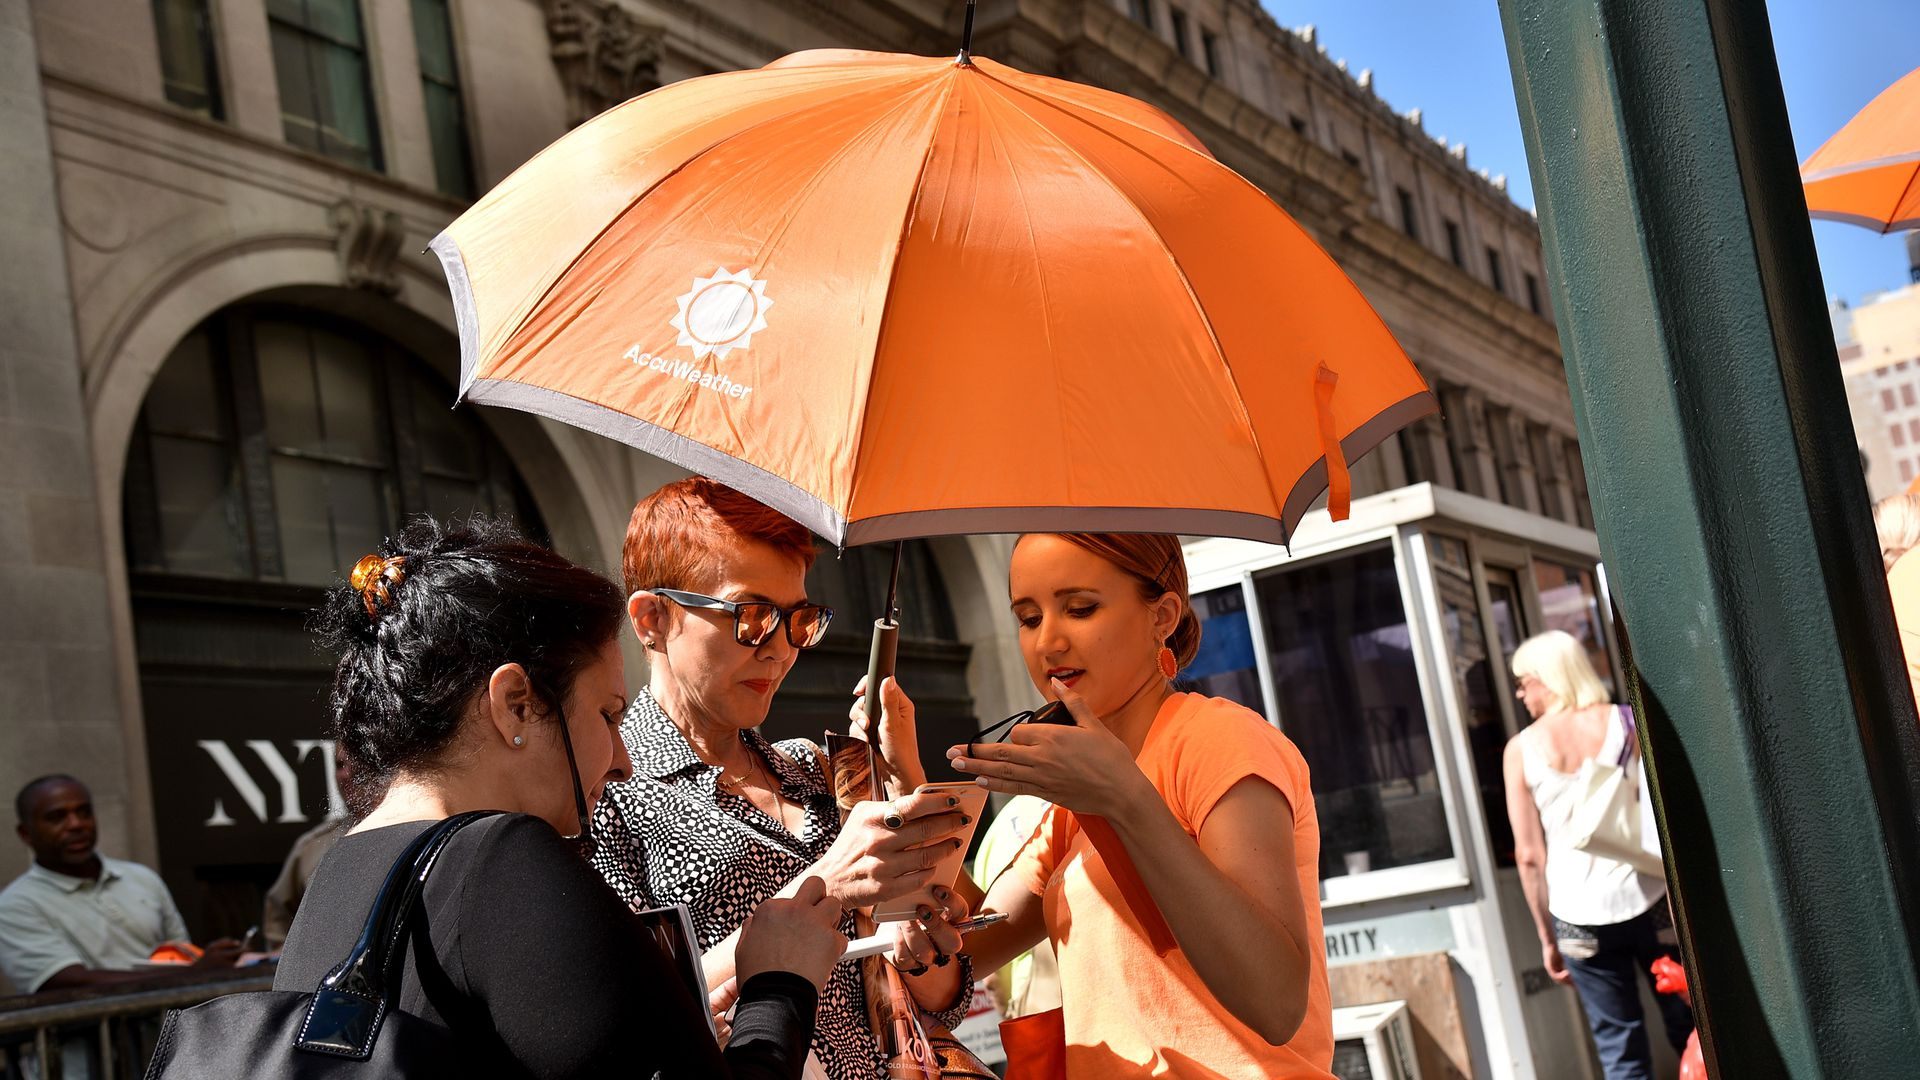 An Accuweather representative talks to two people